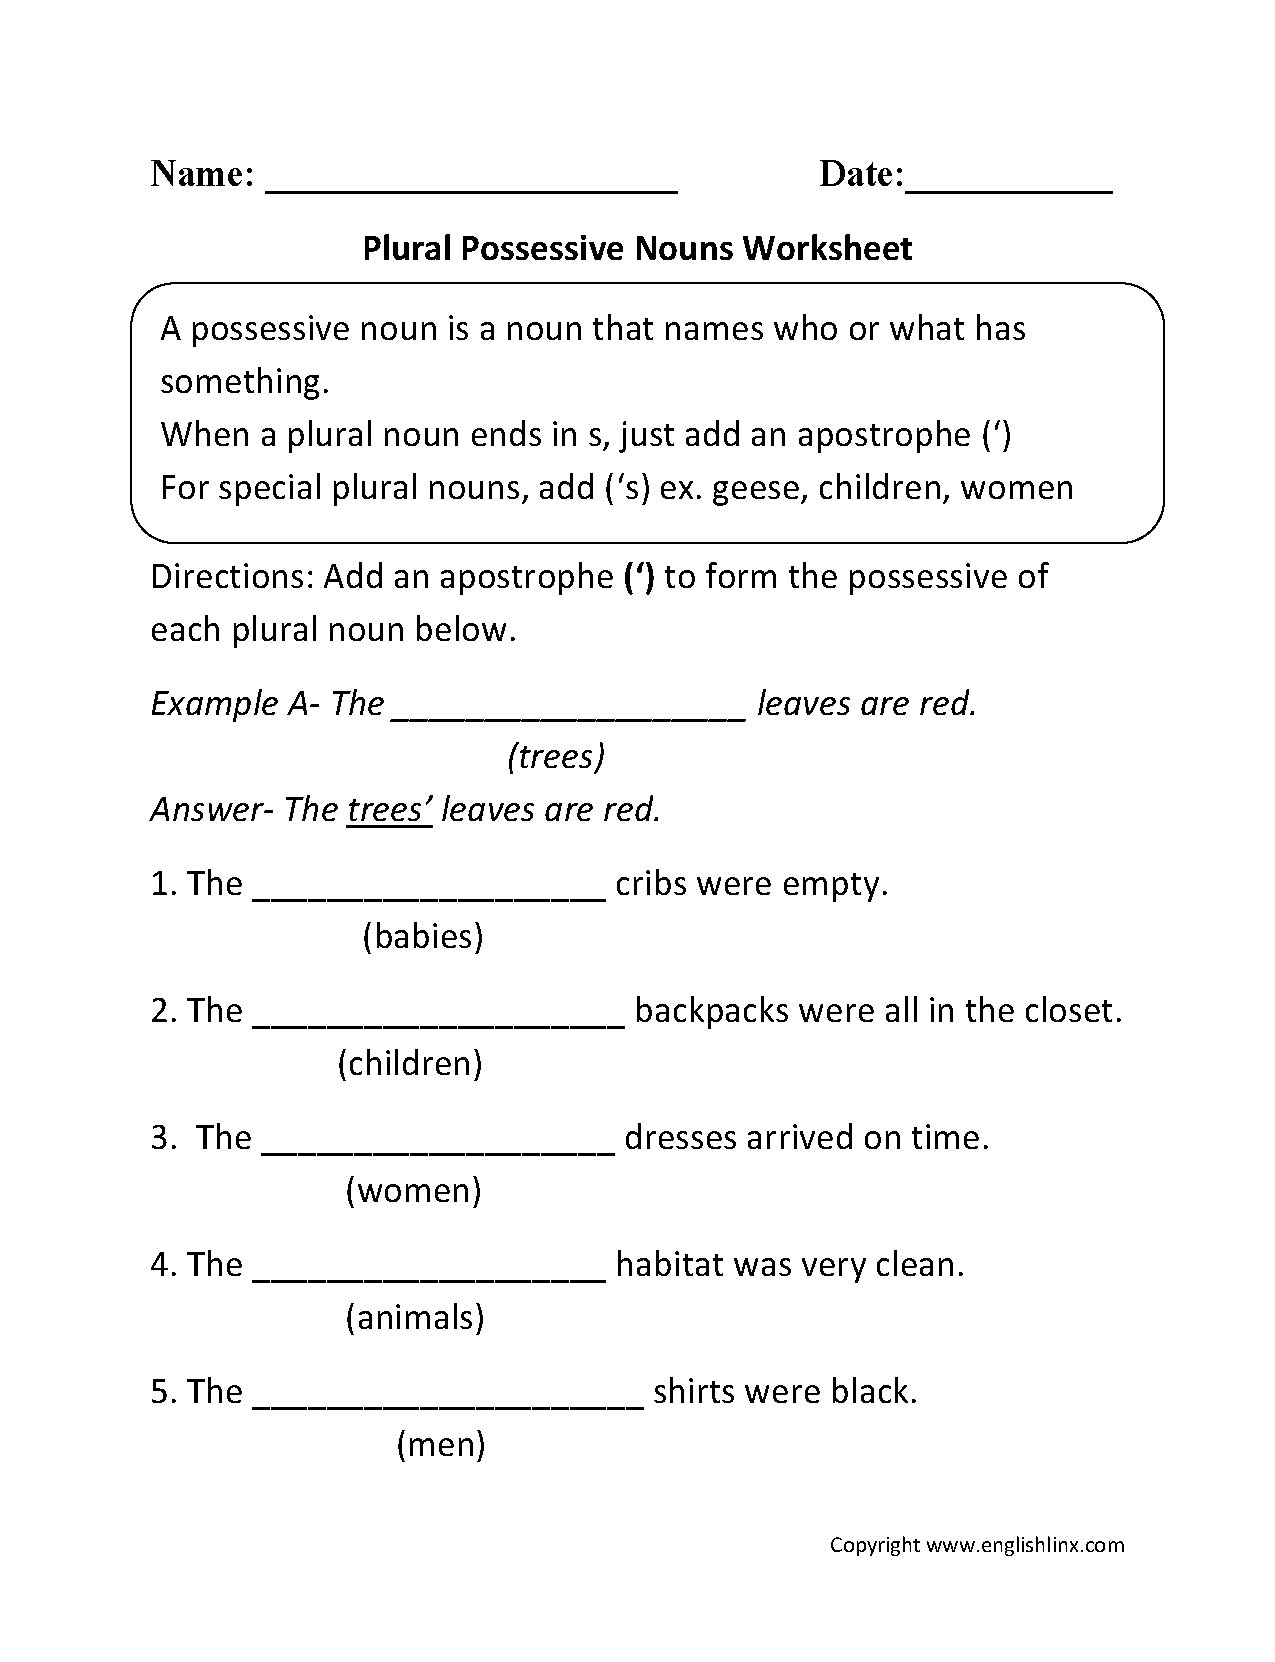 Aldiablosus  Nice Nouns Worksheets  Possessive Nouns Worksheets With Remarkable Possessive Nouns Worksheets With Astounding Geometry Worksheets Grade  Also Analogies Worksheets Th Grade In Addition Worksheet For Letter N And Reading Comprehension Worksheets Year  As Well As Punctuation Worksheets For Kids Additionally Maths Pattern Worksheets From Englishlinxcom With Aldiablosus  Remarkable Nouns Worksheets  Possessive Nouns Worksheets With Astounding Possessive Nouns Worksheets And Nice Geometry Worksheets Grade  Also Analogies Worksheets Th Grade In Addition Worksheet For Letter N From Englishlinxcom